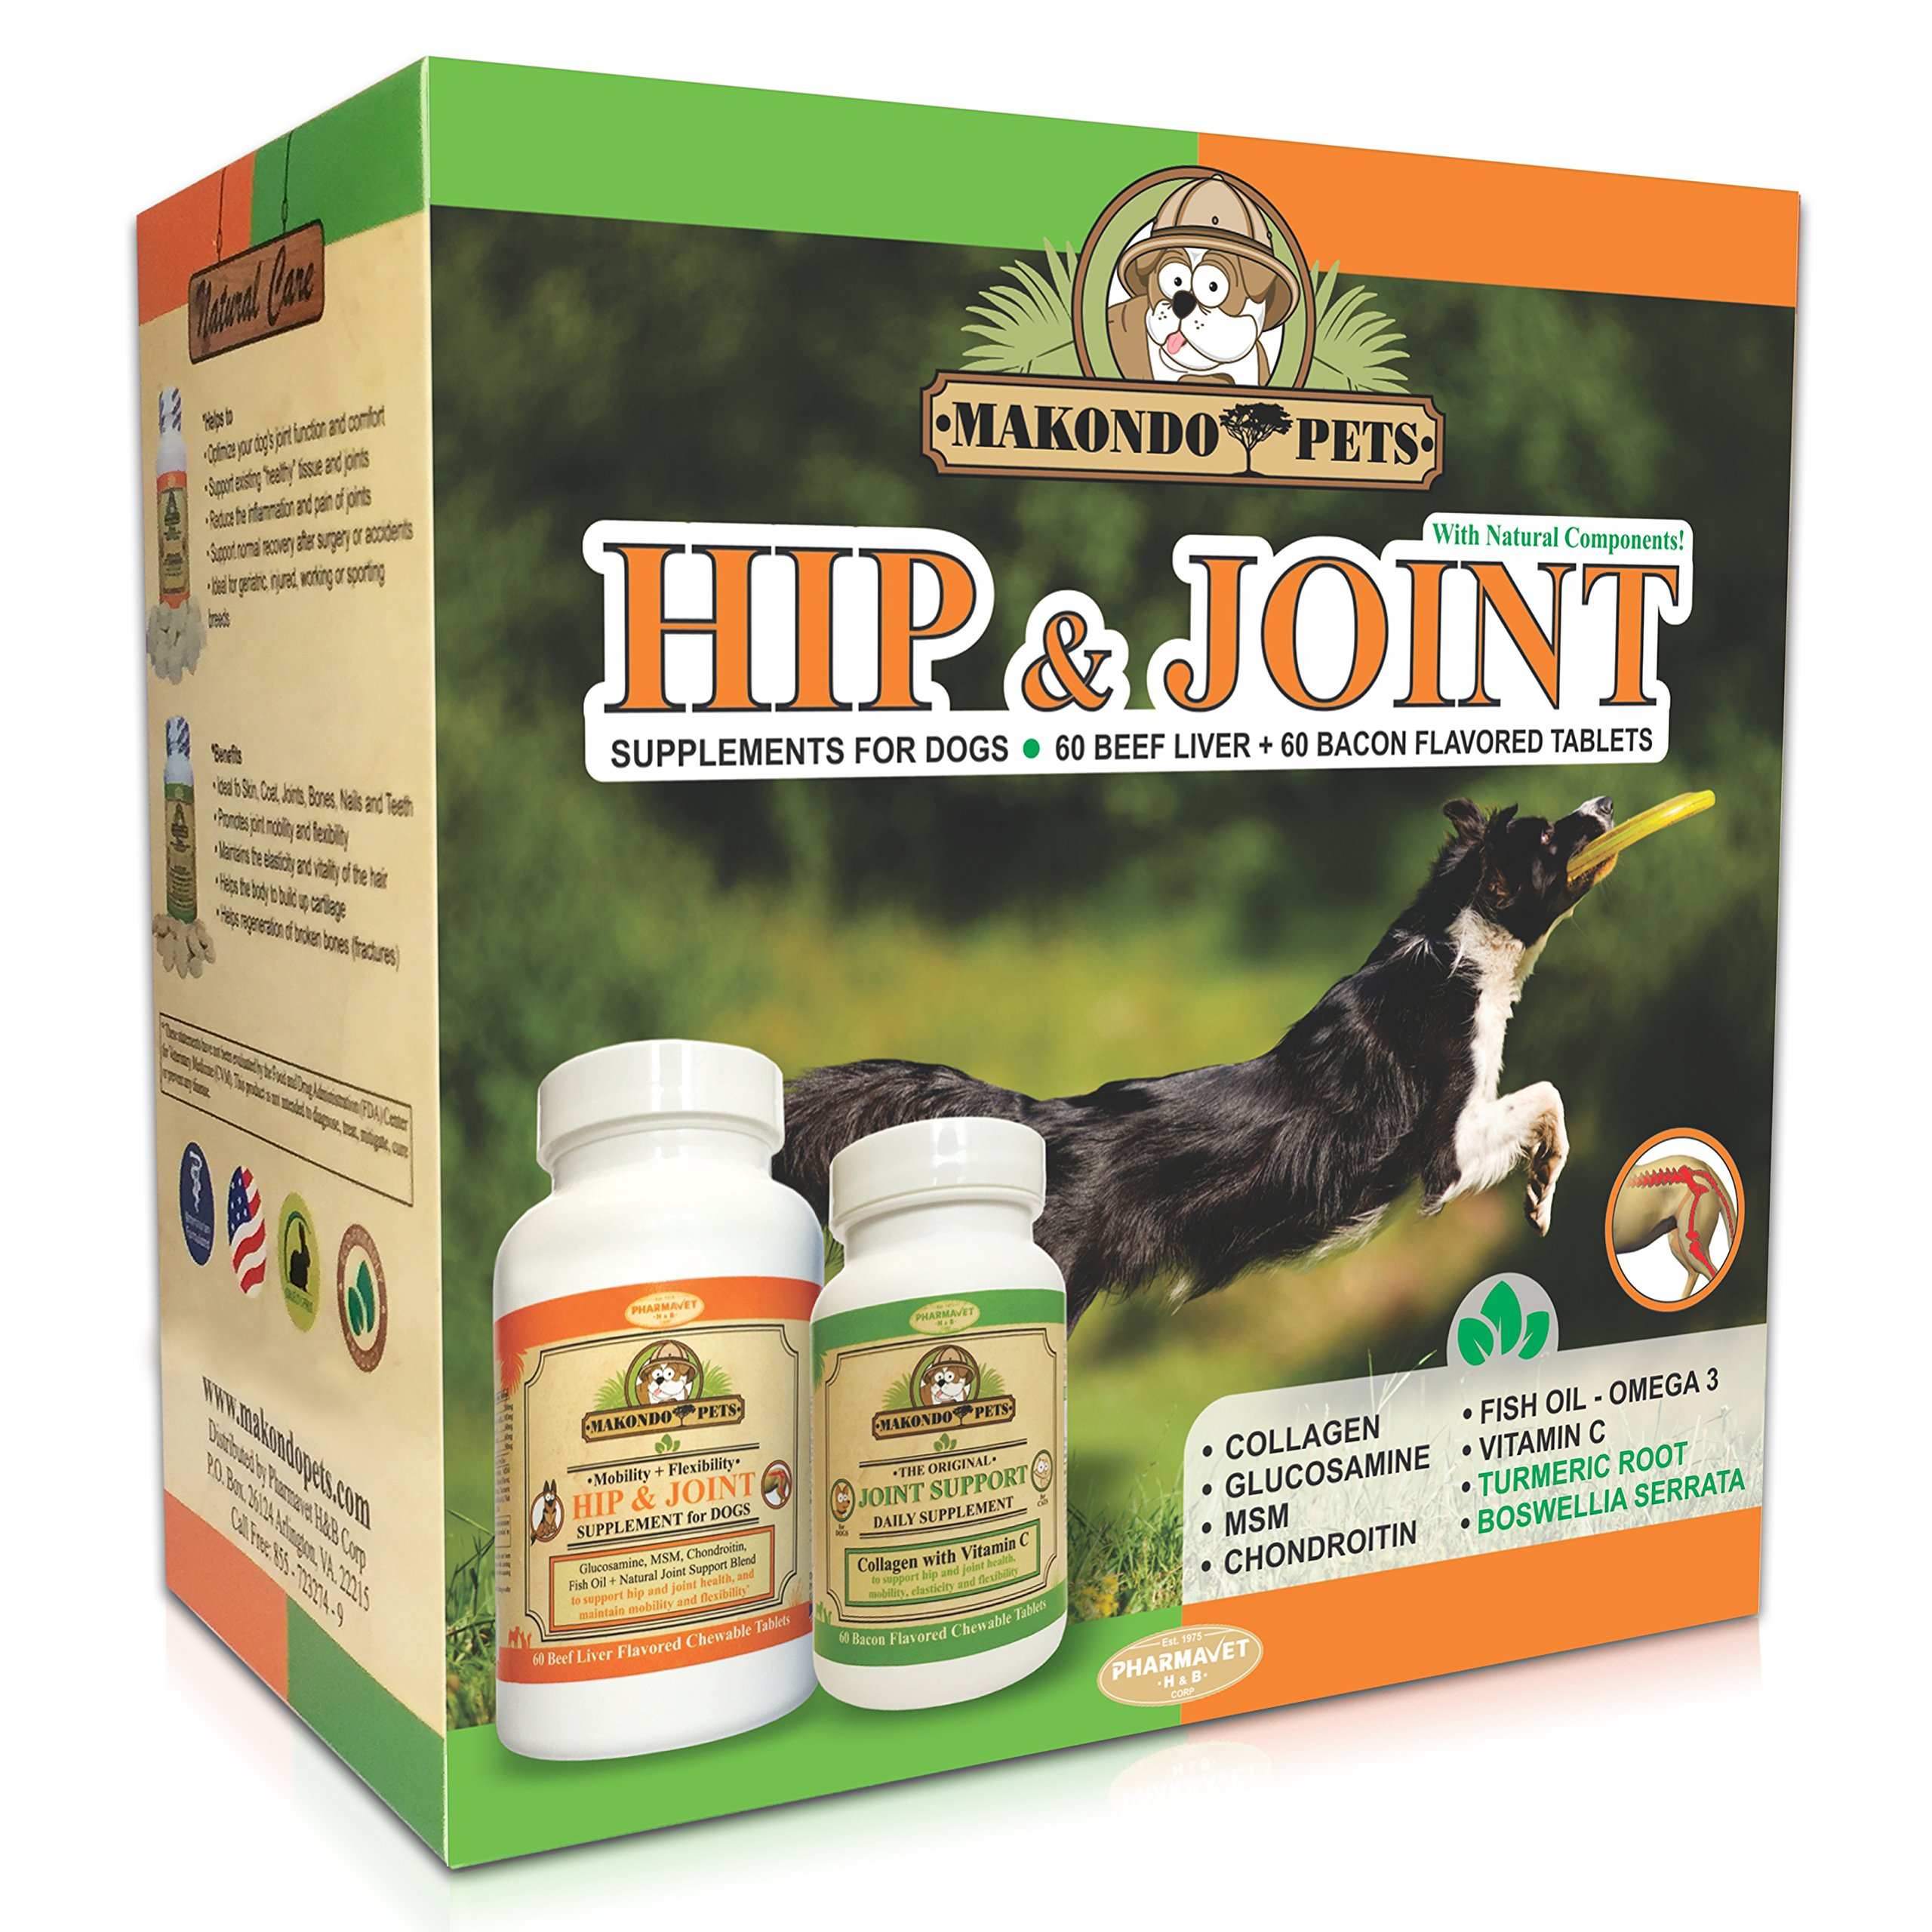 Dog Arthritis Joint Supplements for Pets – Canine Collagen Chondroitin MSM Dietary Dog Supplement – Dog Vitamins with Fish Oil and Glucosamine – 120 Tablets for Dogs – Natural Boswellia and Turmeric